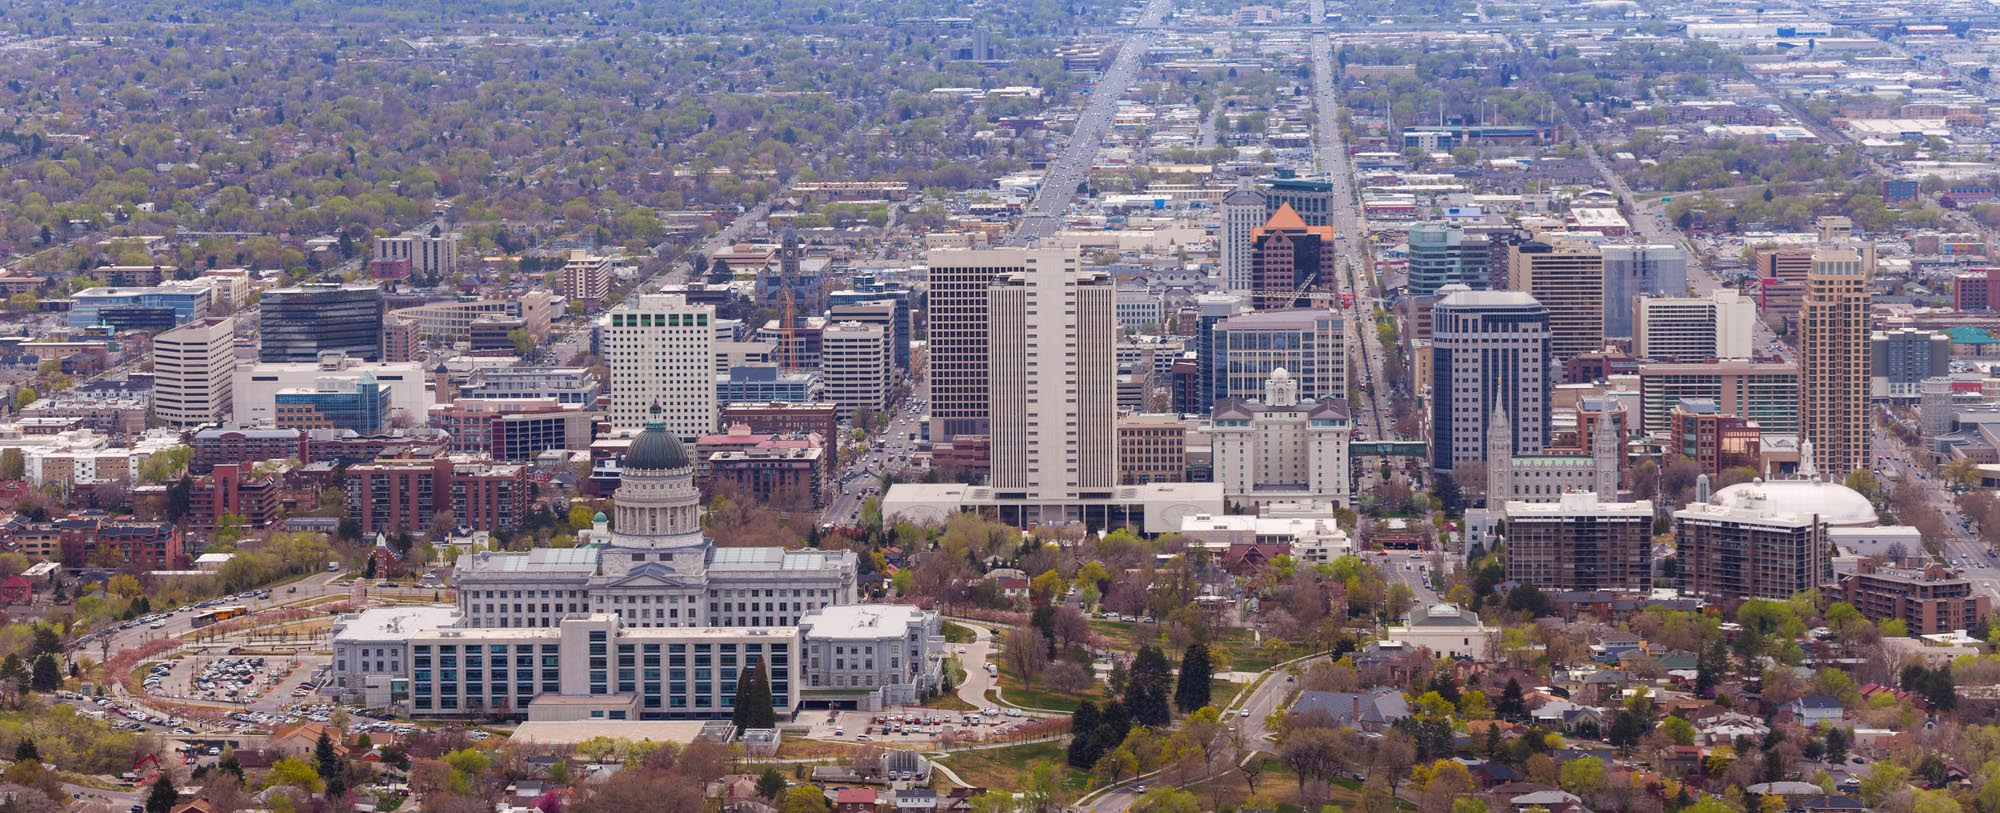 An aerial view of the capitol building and downtown Salt Lake City, Utah